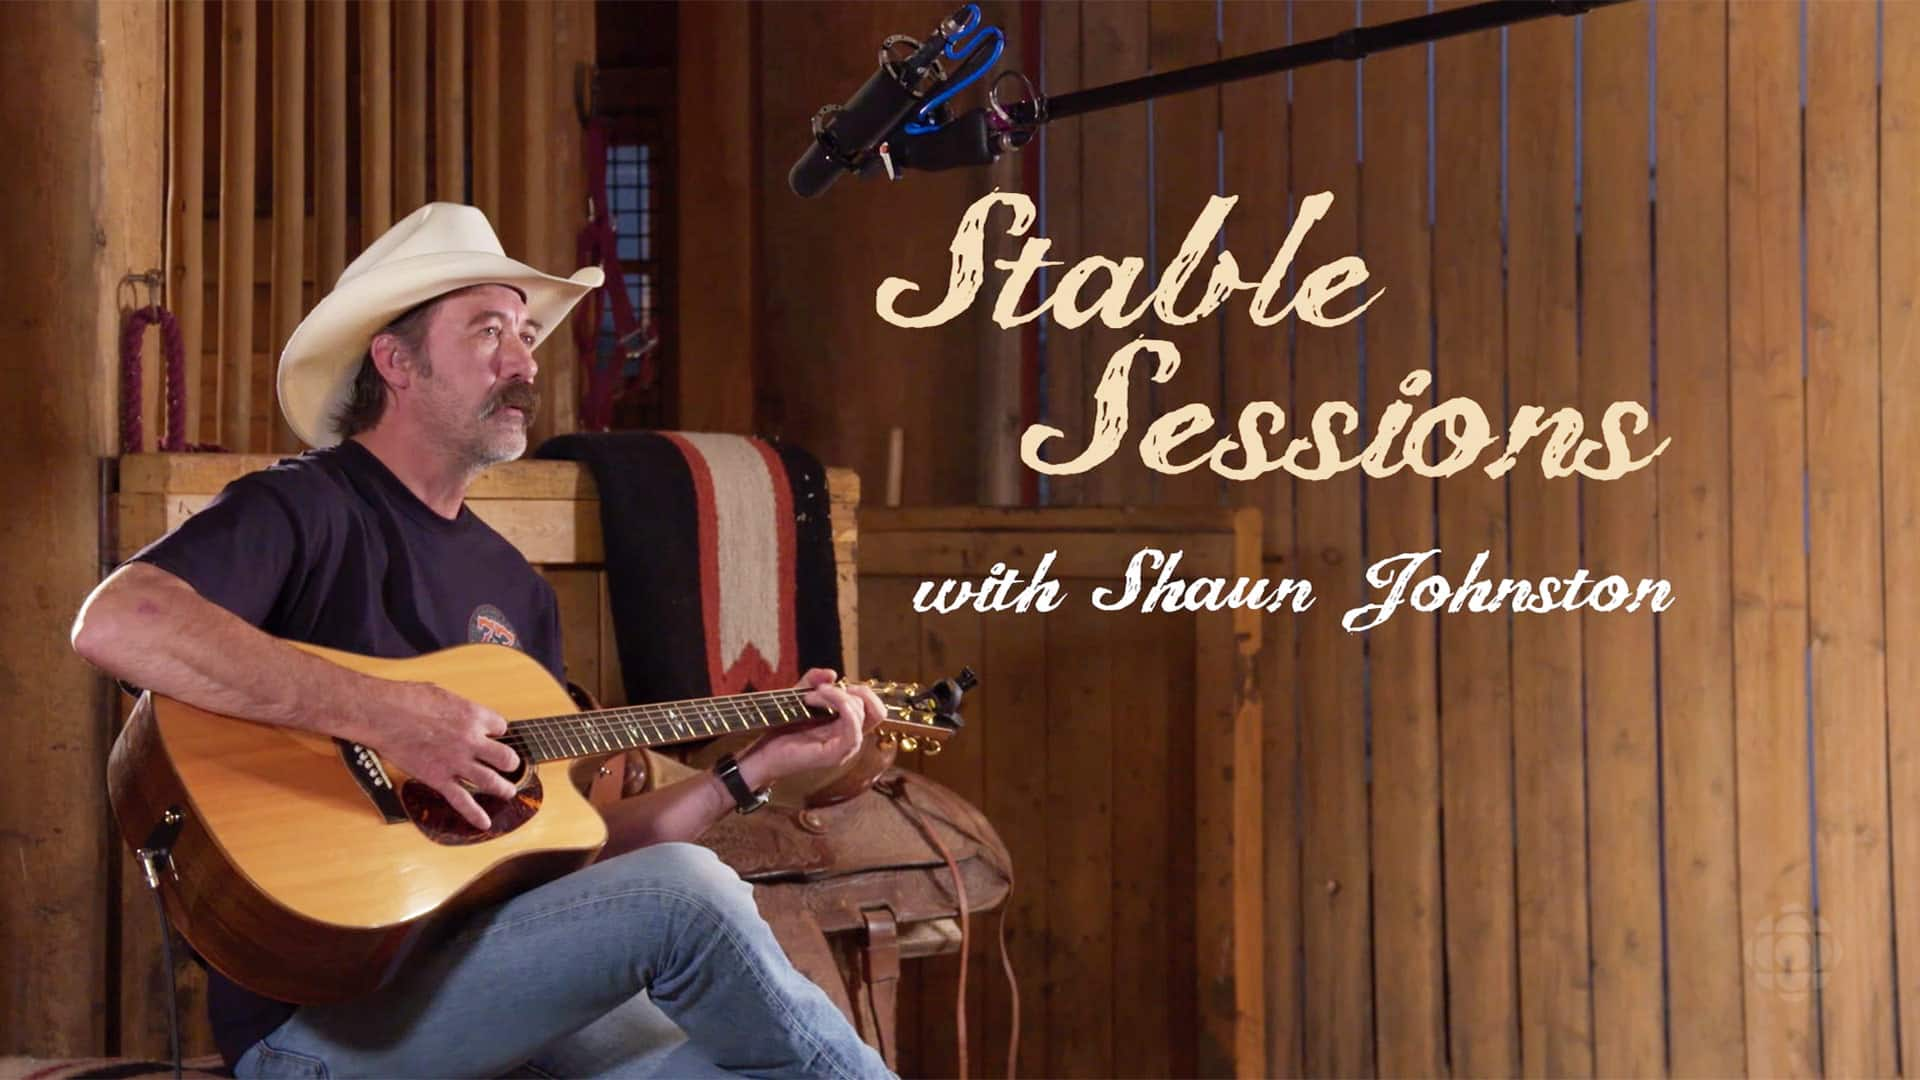 Stable Sessions with Shaun Johnston